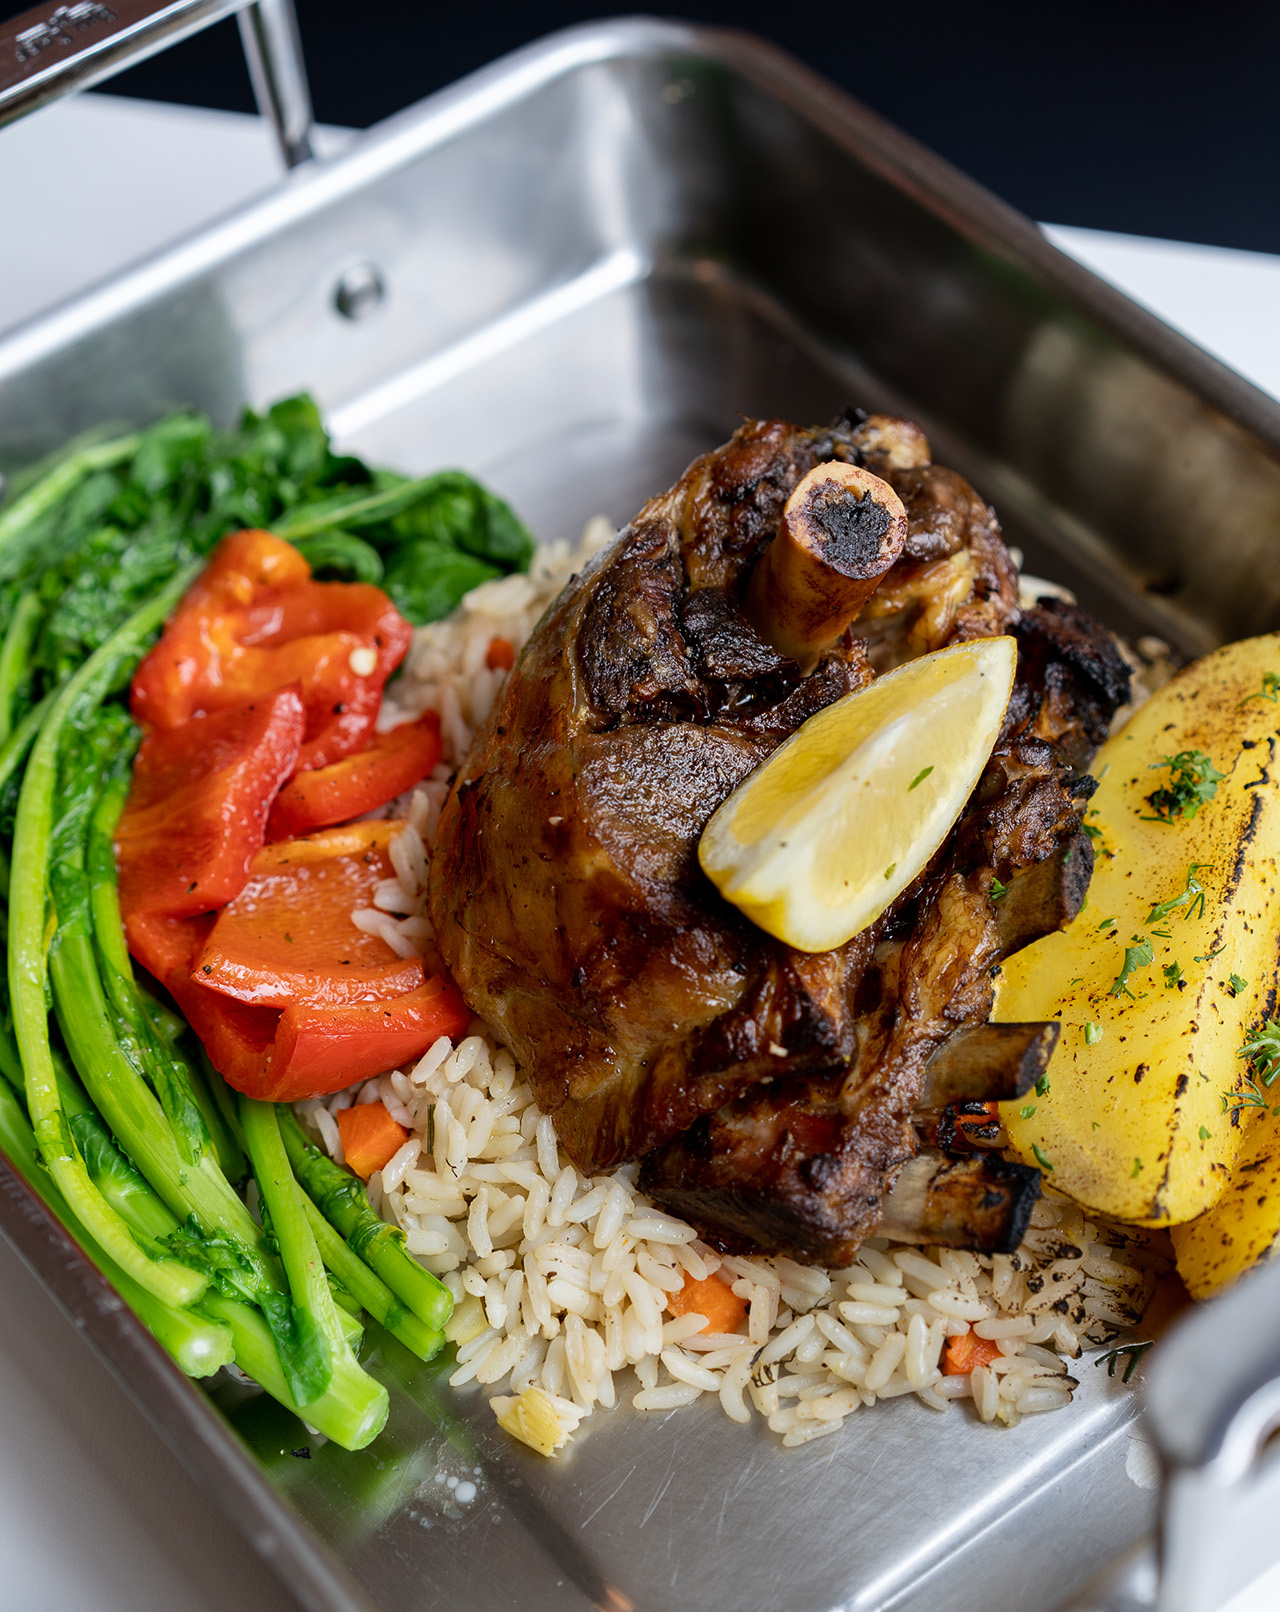 Country Lamb Platter - best for those who are hungry!